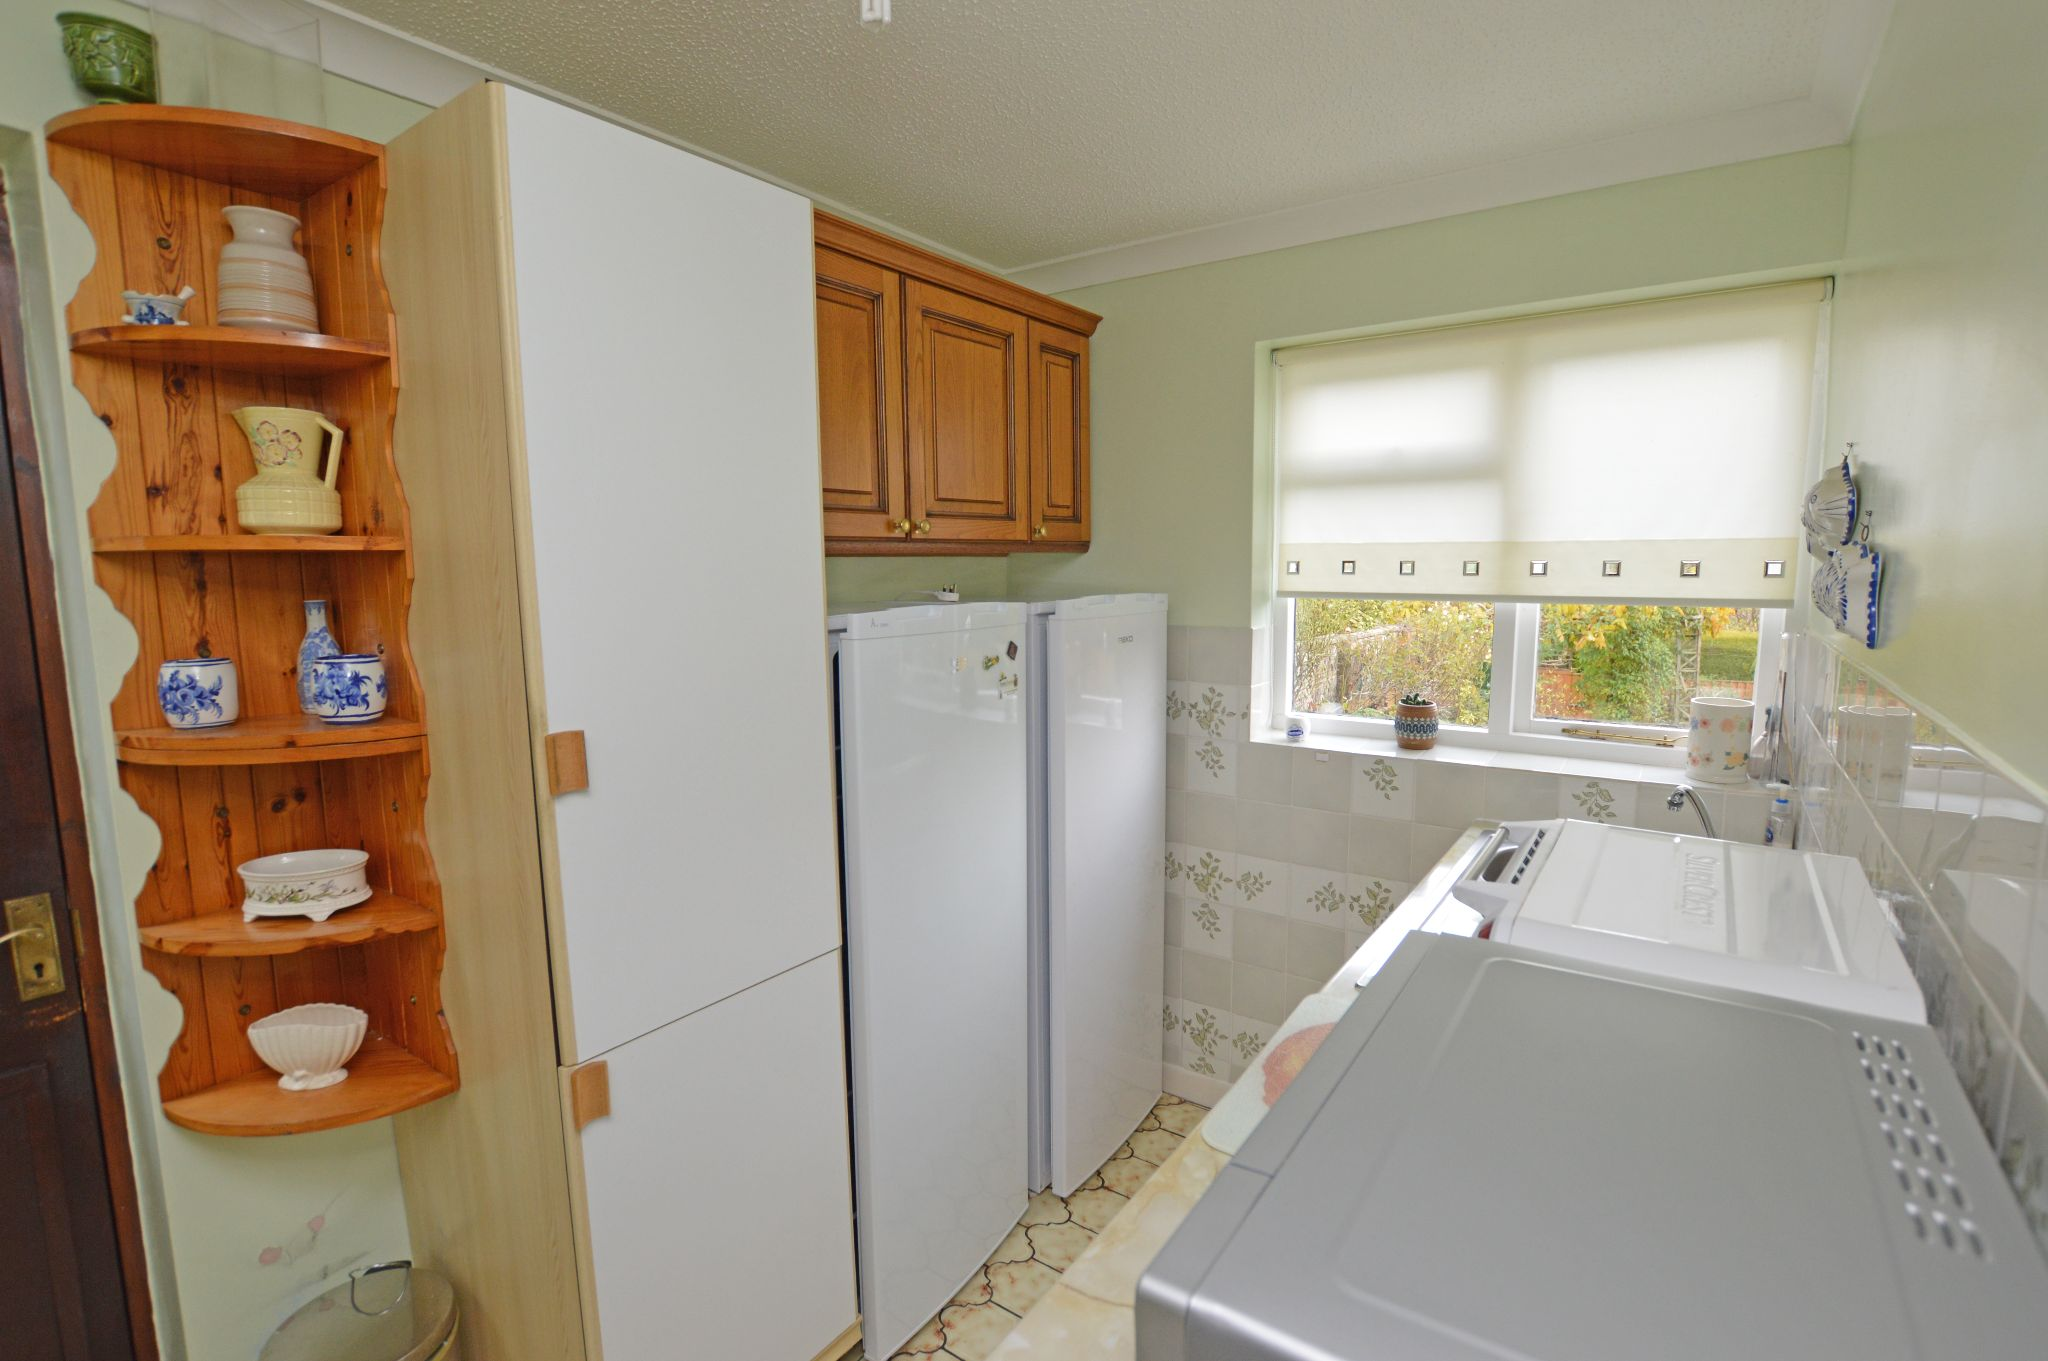 4 bedroom detached house For Sale in Abergele - Utility